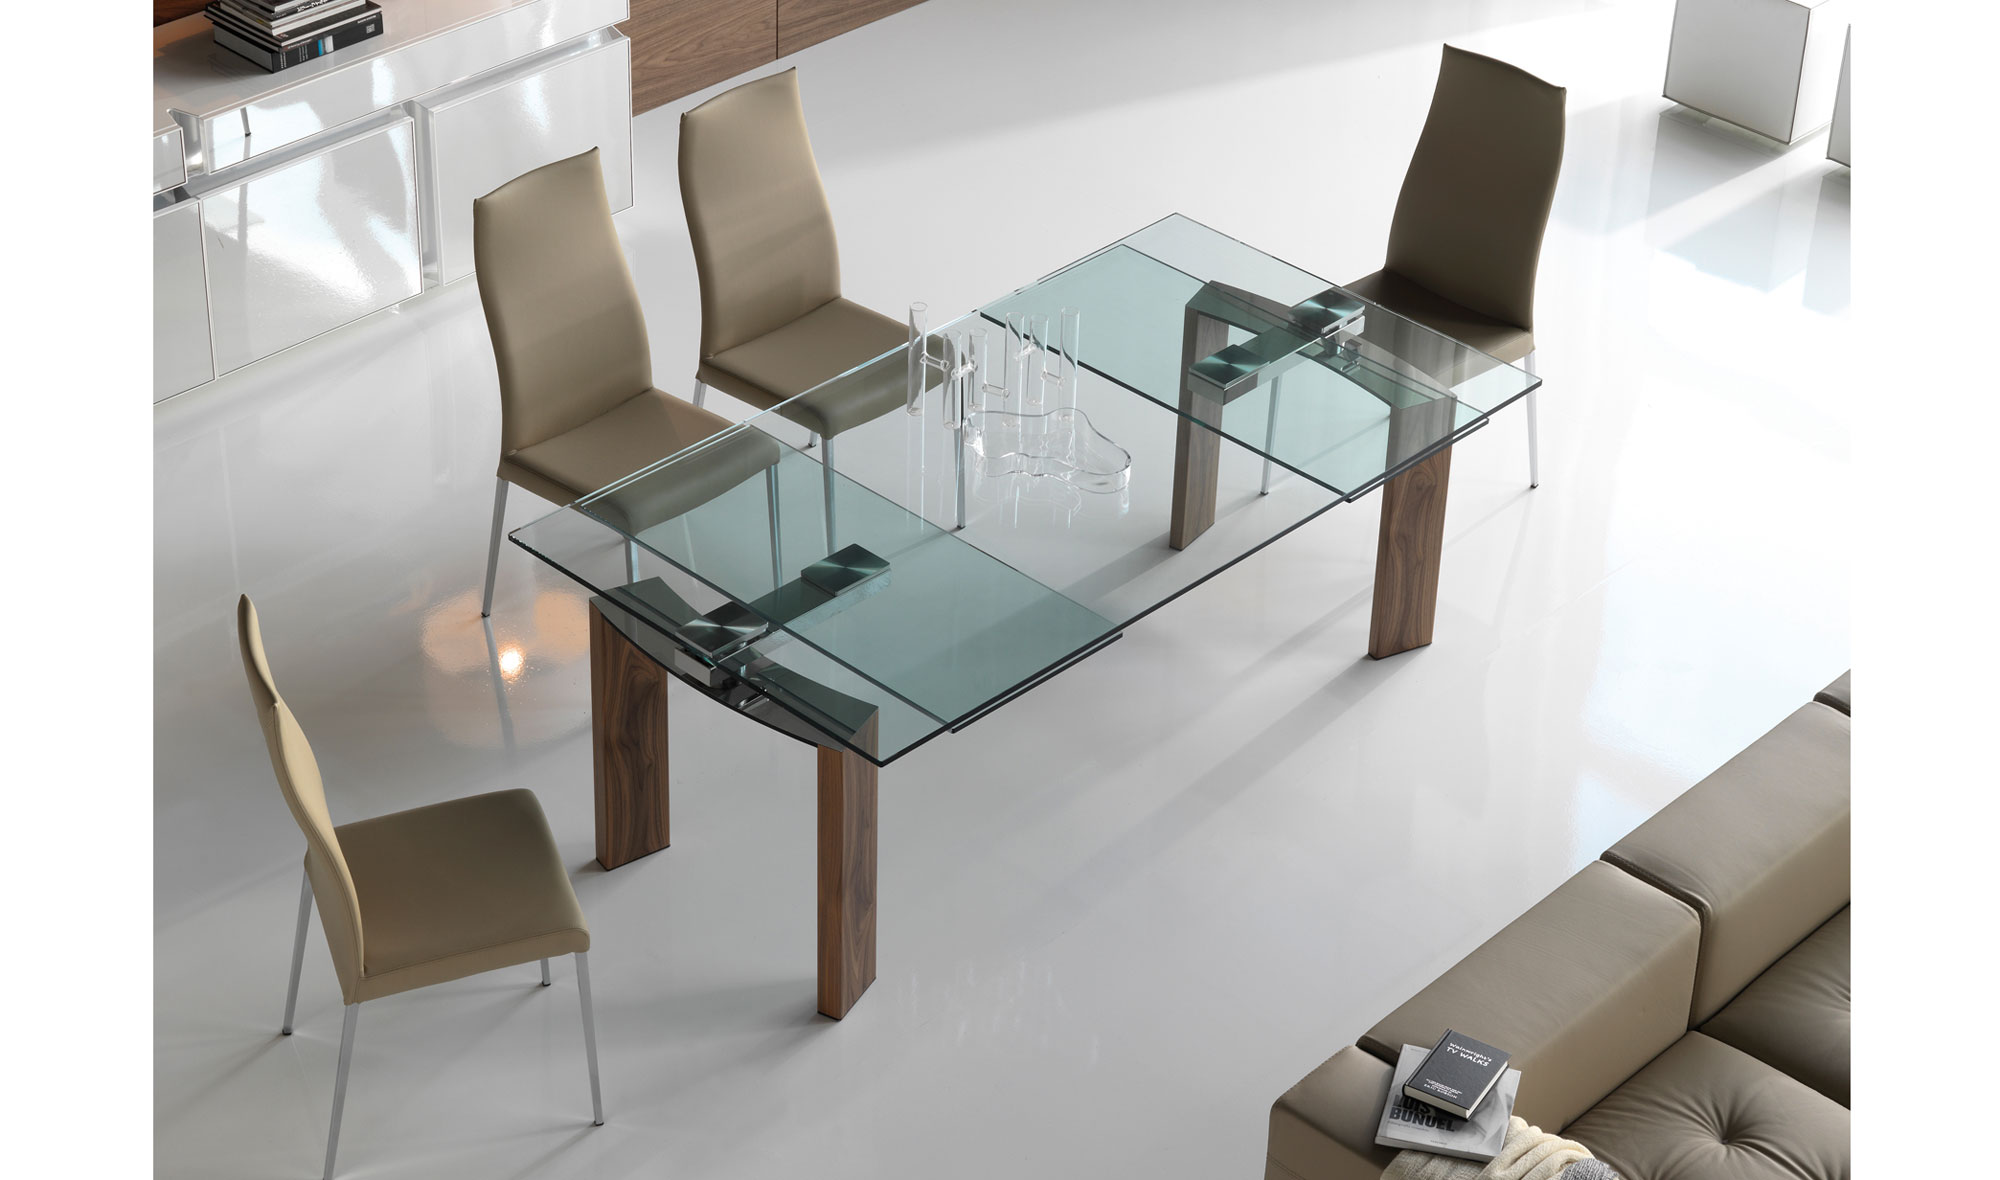 Mesa de comedor extensible moderna daytona cattelan en for Mesas extensibles salon